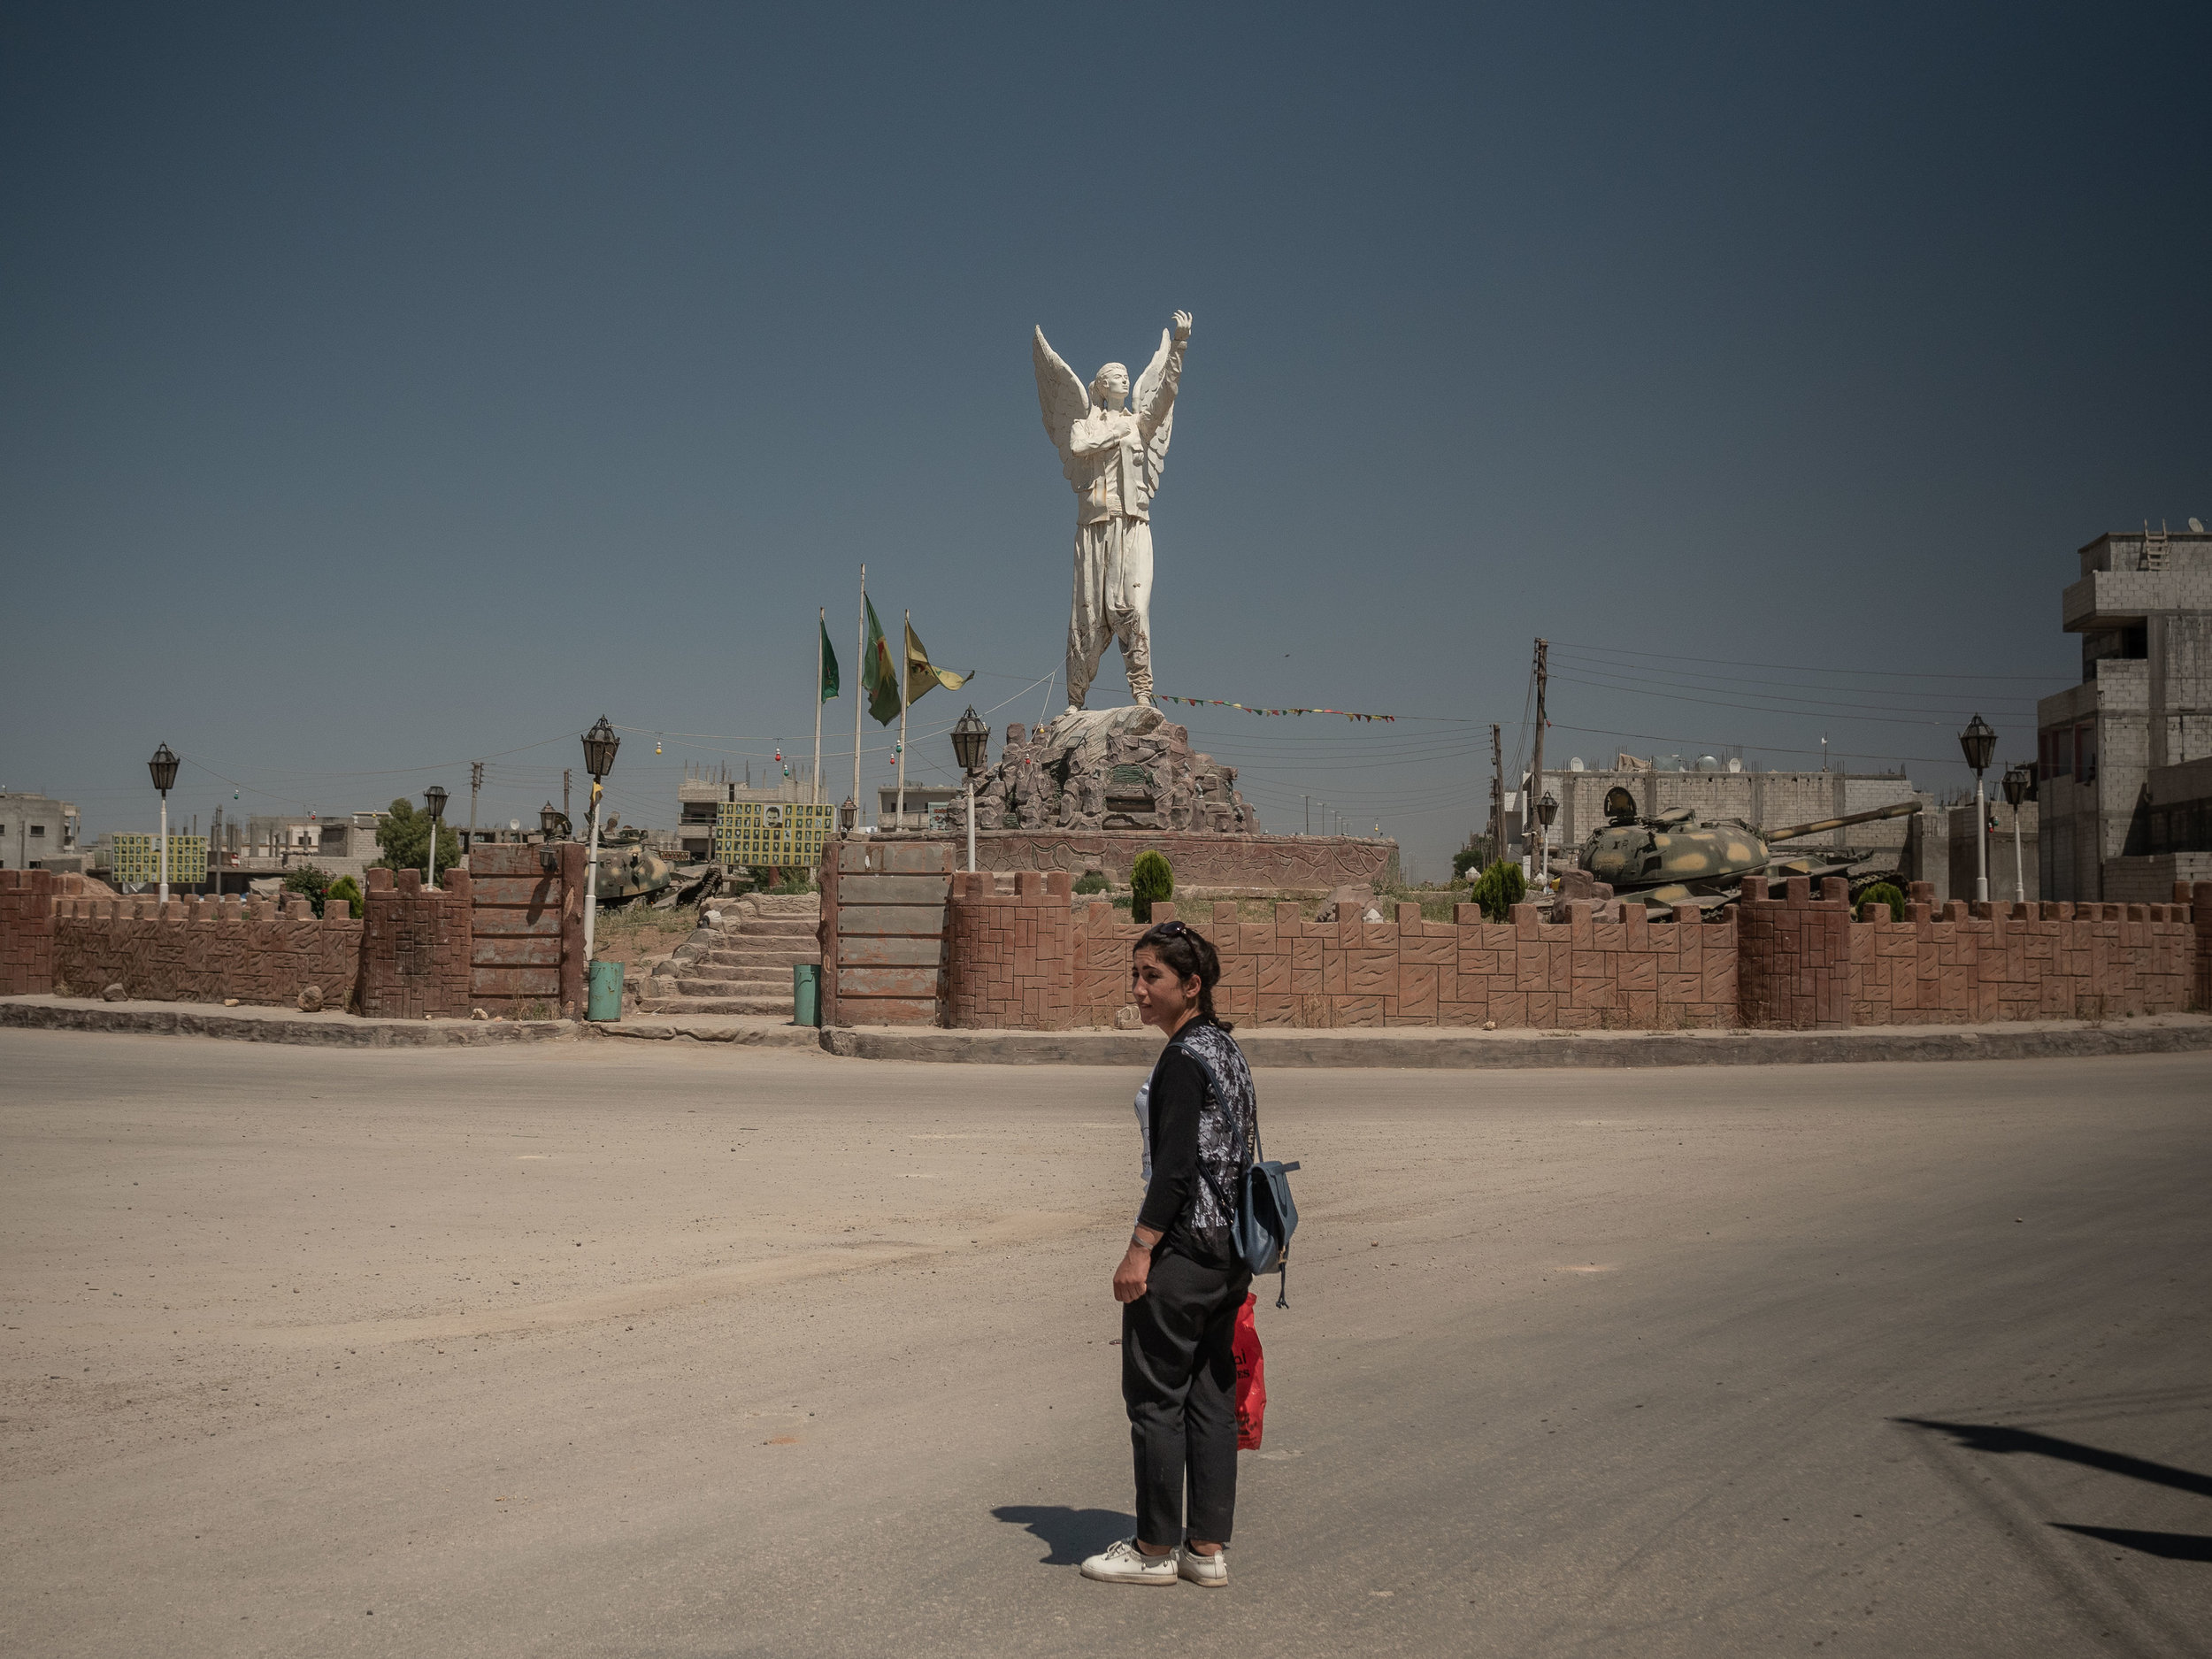 28/05/19, Kobane, Syria - The monument dedicated to YPG fighters at the entrance of Kobane.